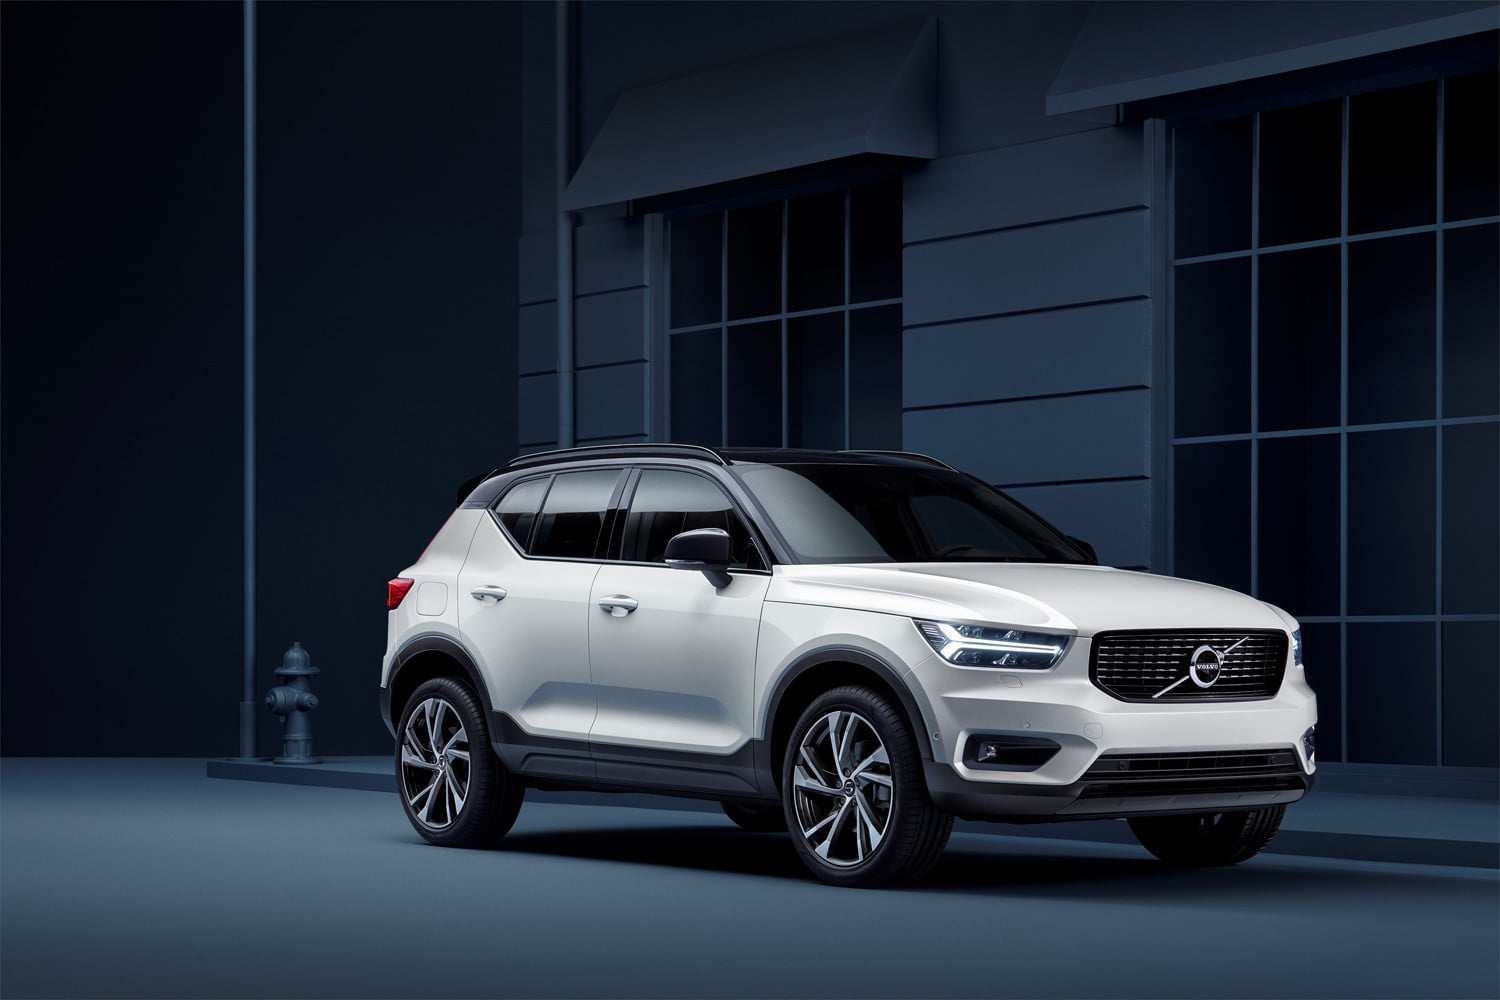 78 Concept of Volvo Xc40 2020 Release Date Wallpaper with Volvo Xc40 2020 Release Date